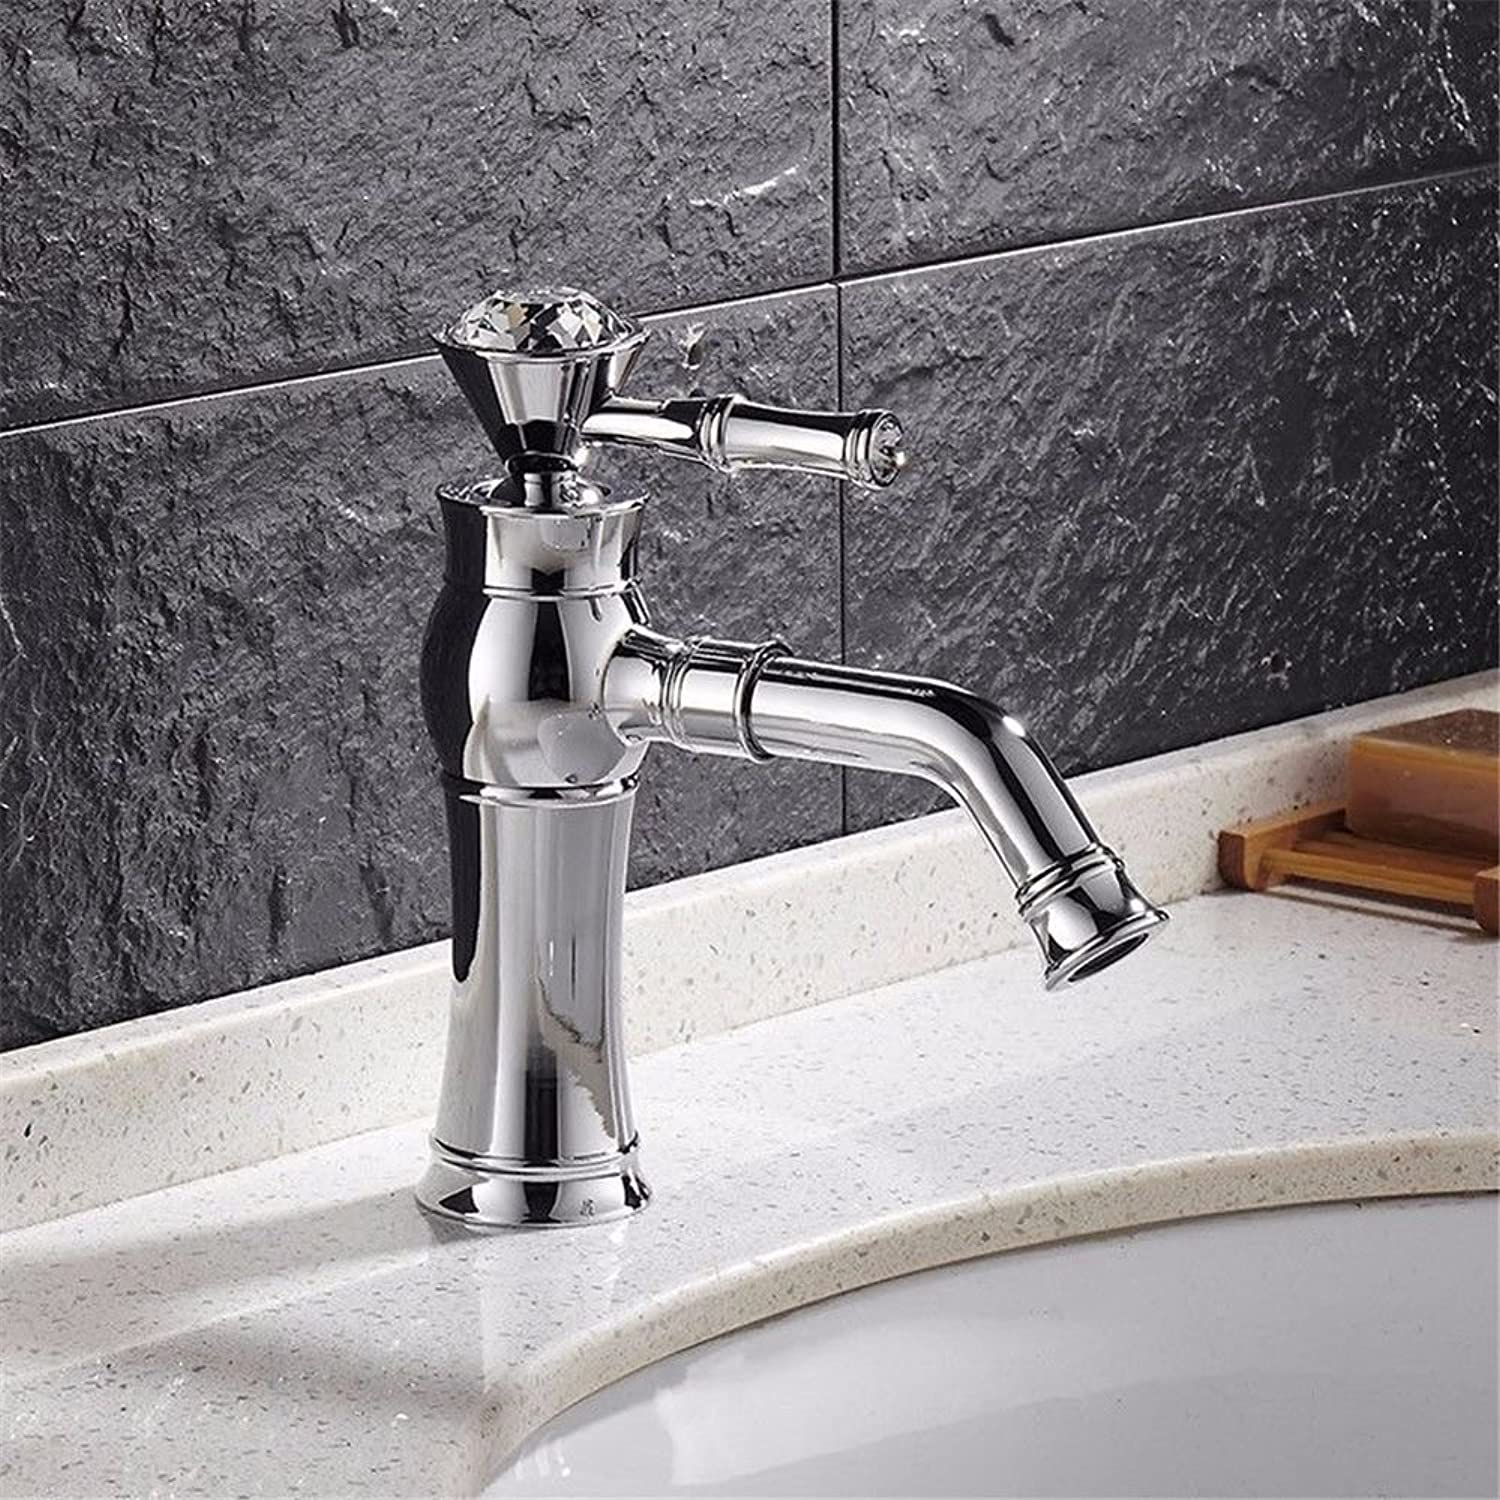 Lalaky Taps Faucet Kitchen Mixer Sink Waterfall Bathroom Mixer Basin Mixer Tap for Kitchen Bathroom and Washroom Silver Copper Rhinestone Retro Single Handle Single Hole